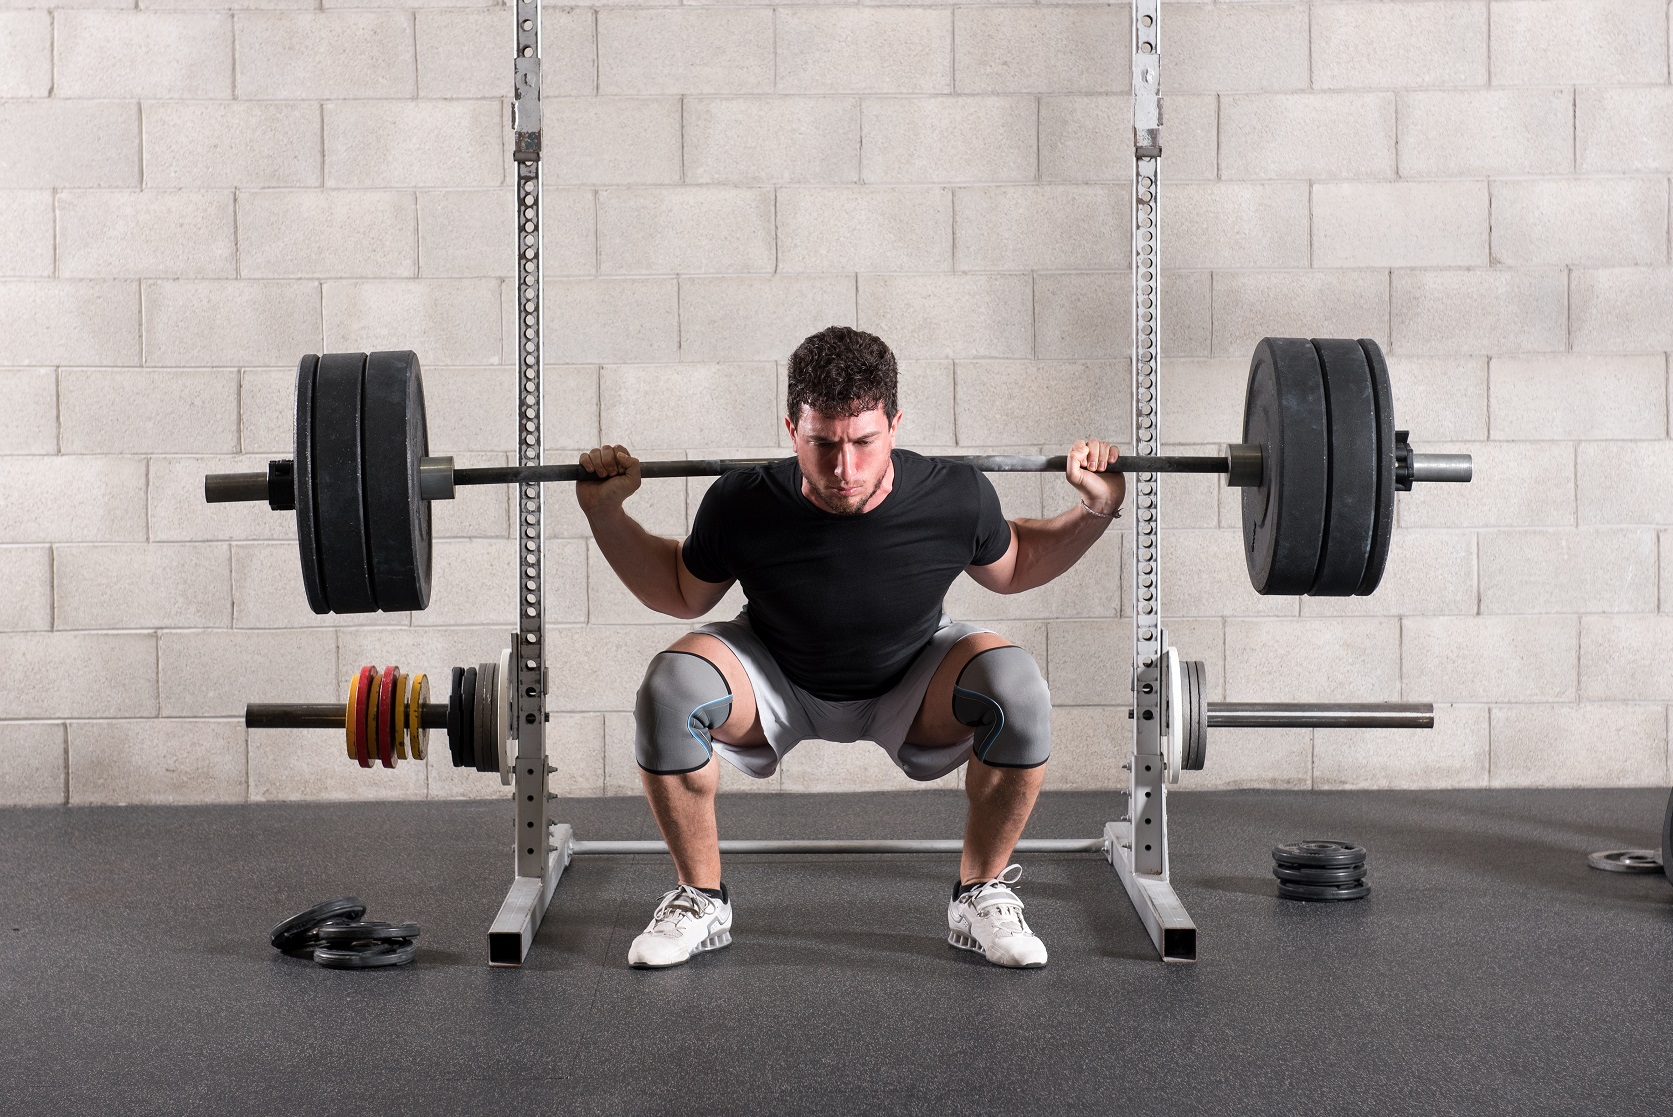 Deep barbell squat